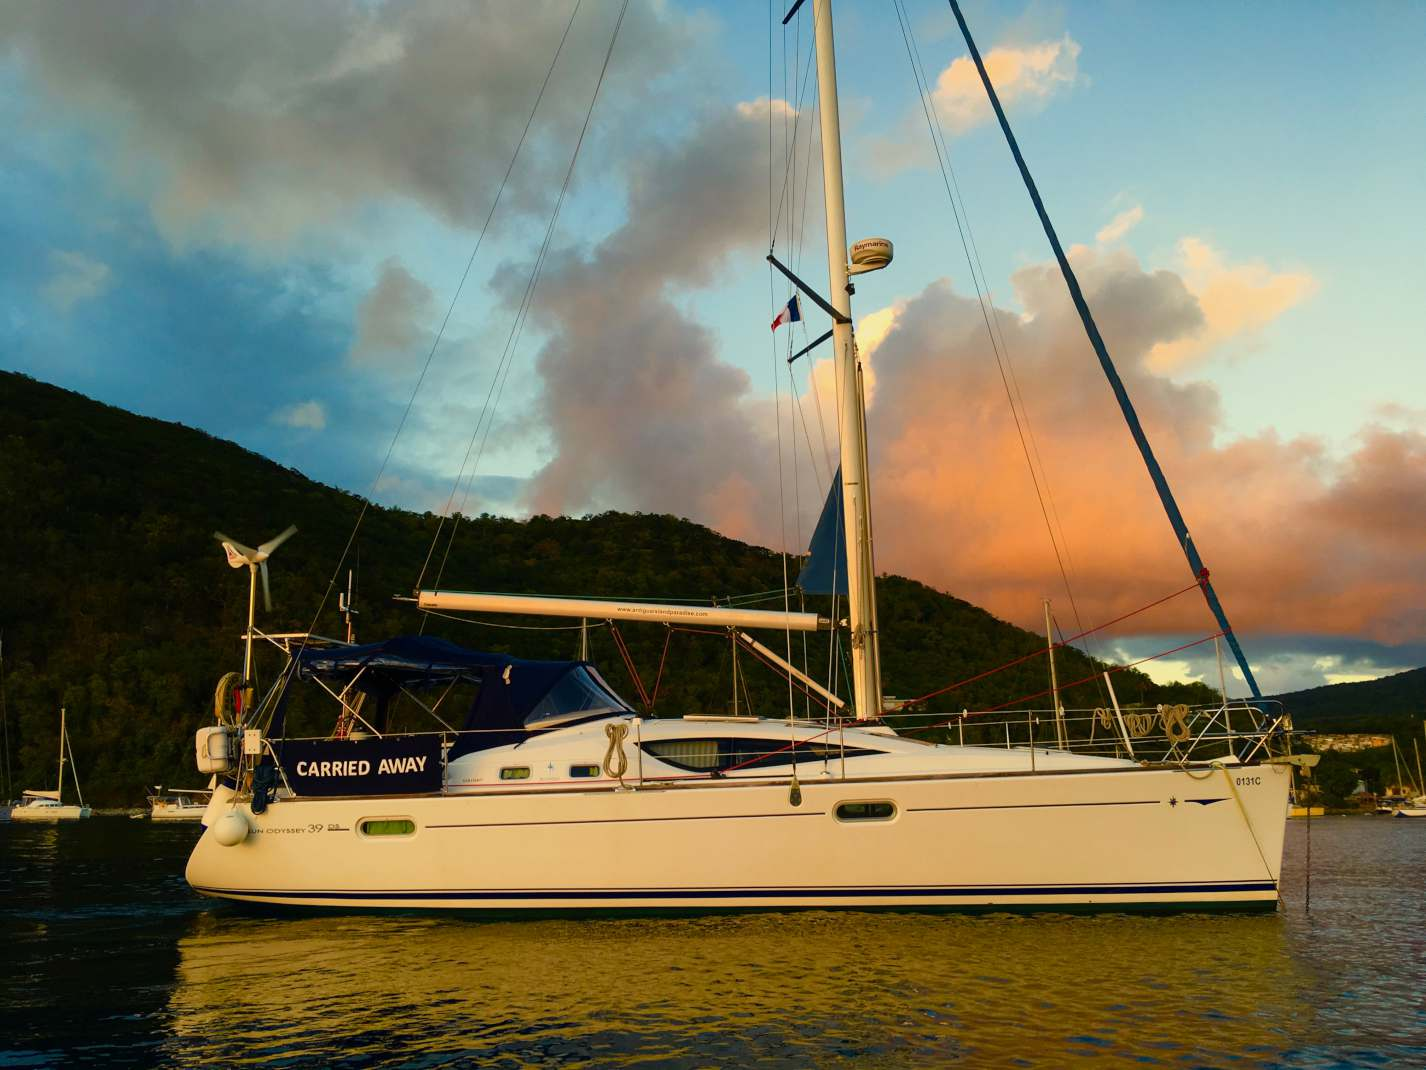 Sunset, our yacht, Carried Away